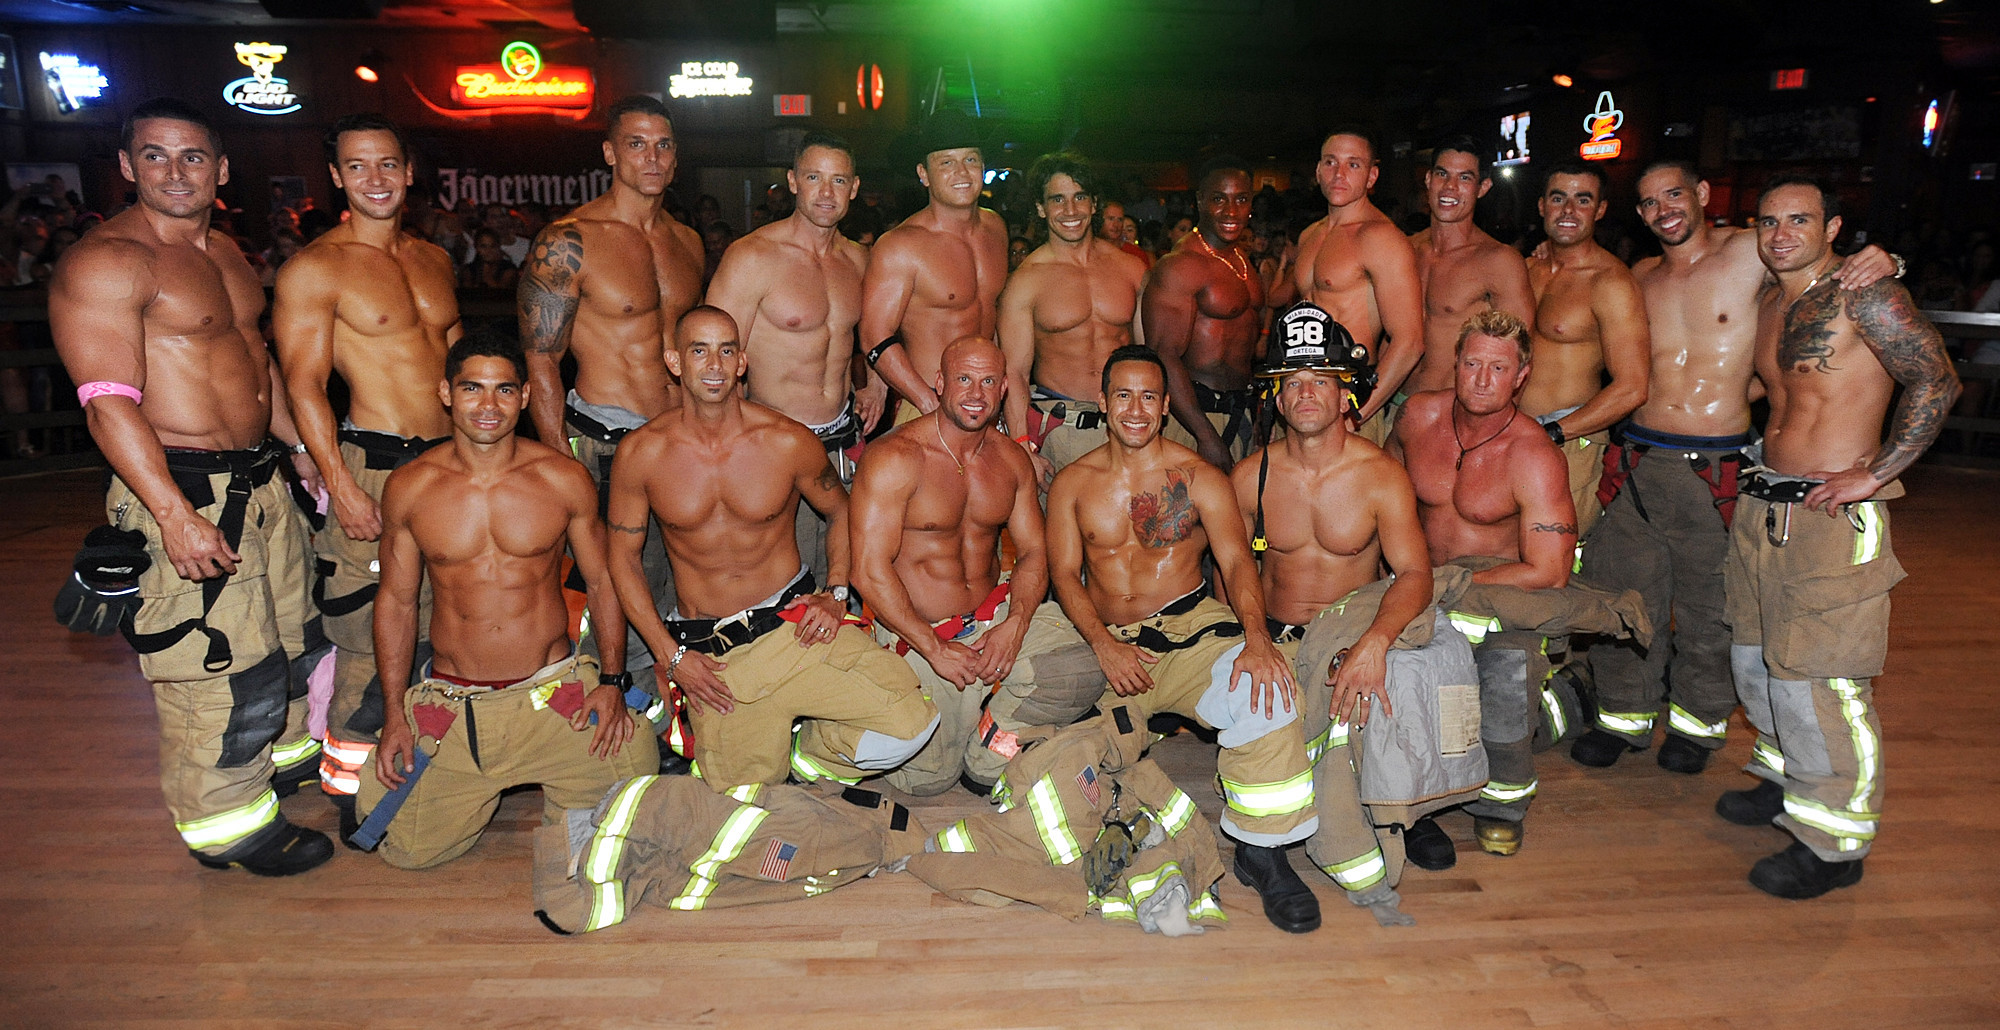 South Florida Firefighters Calendar 2014 pictures ...